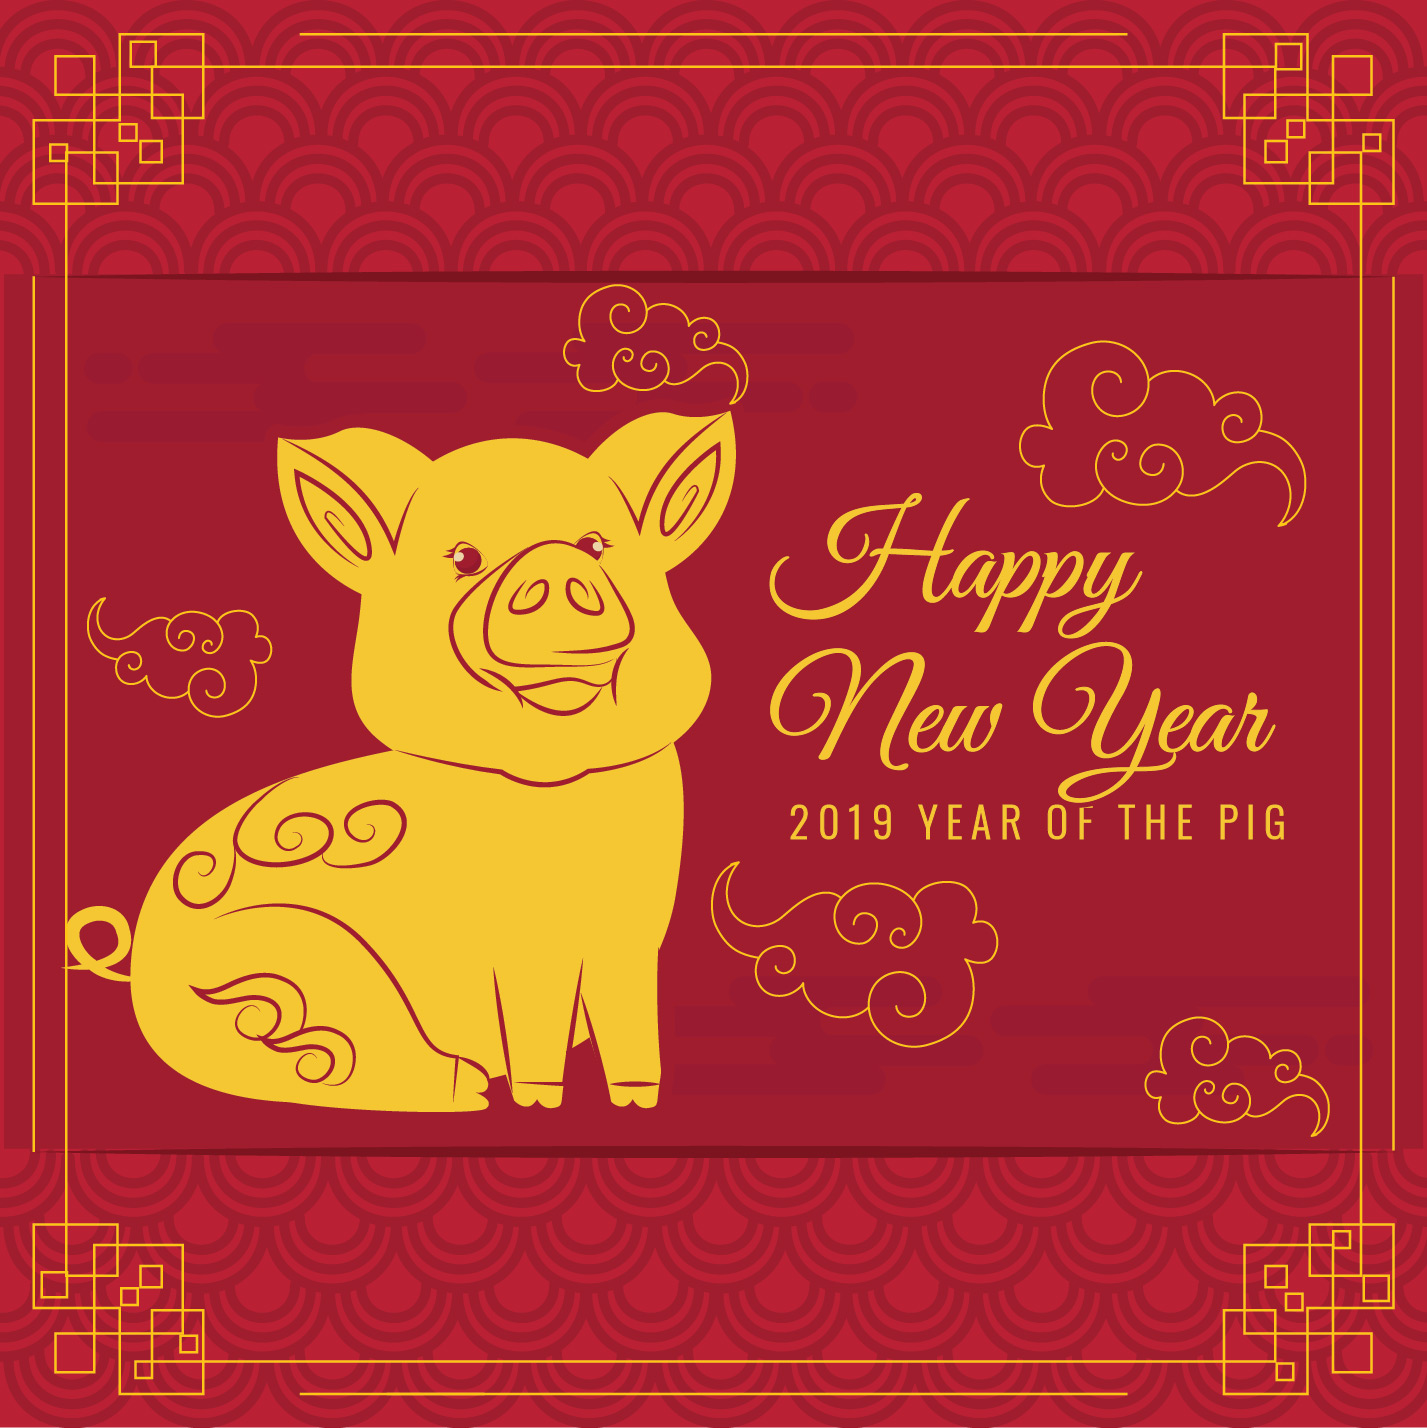 Chinese Dierenriem 2019 Vector 2019 Chinees Nieuwjaar Download Gratis Vectorkunst En